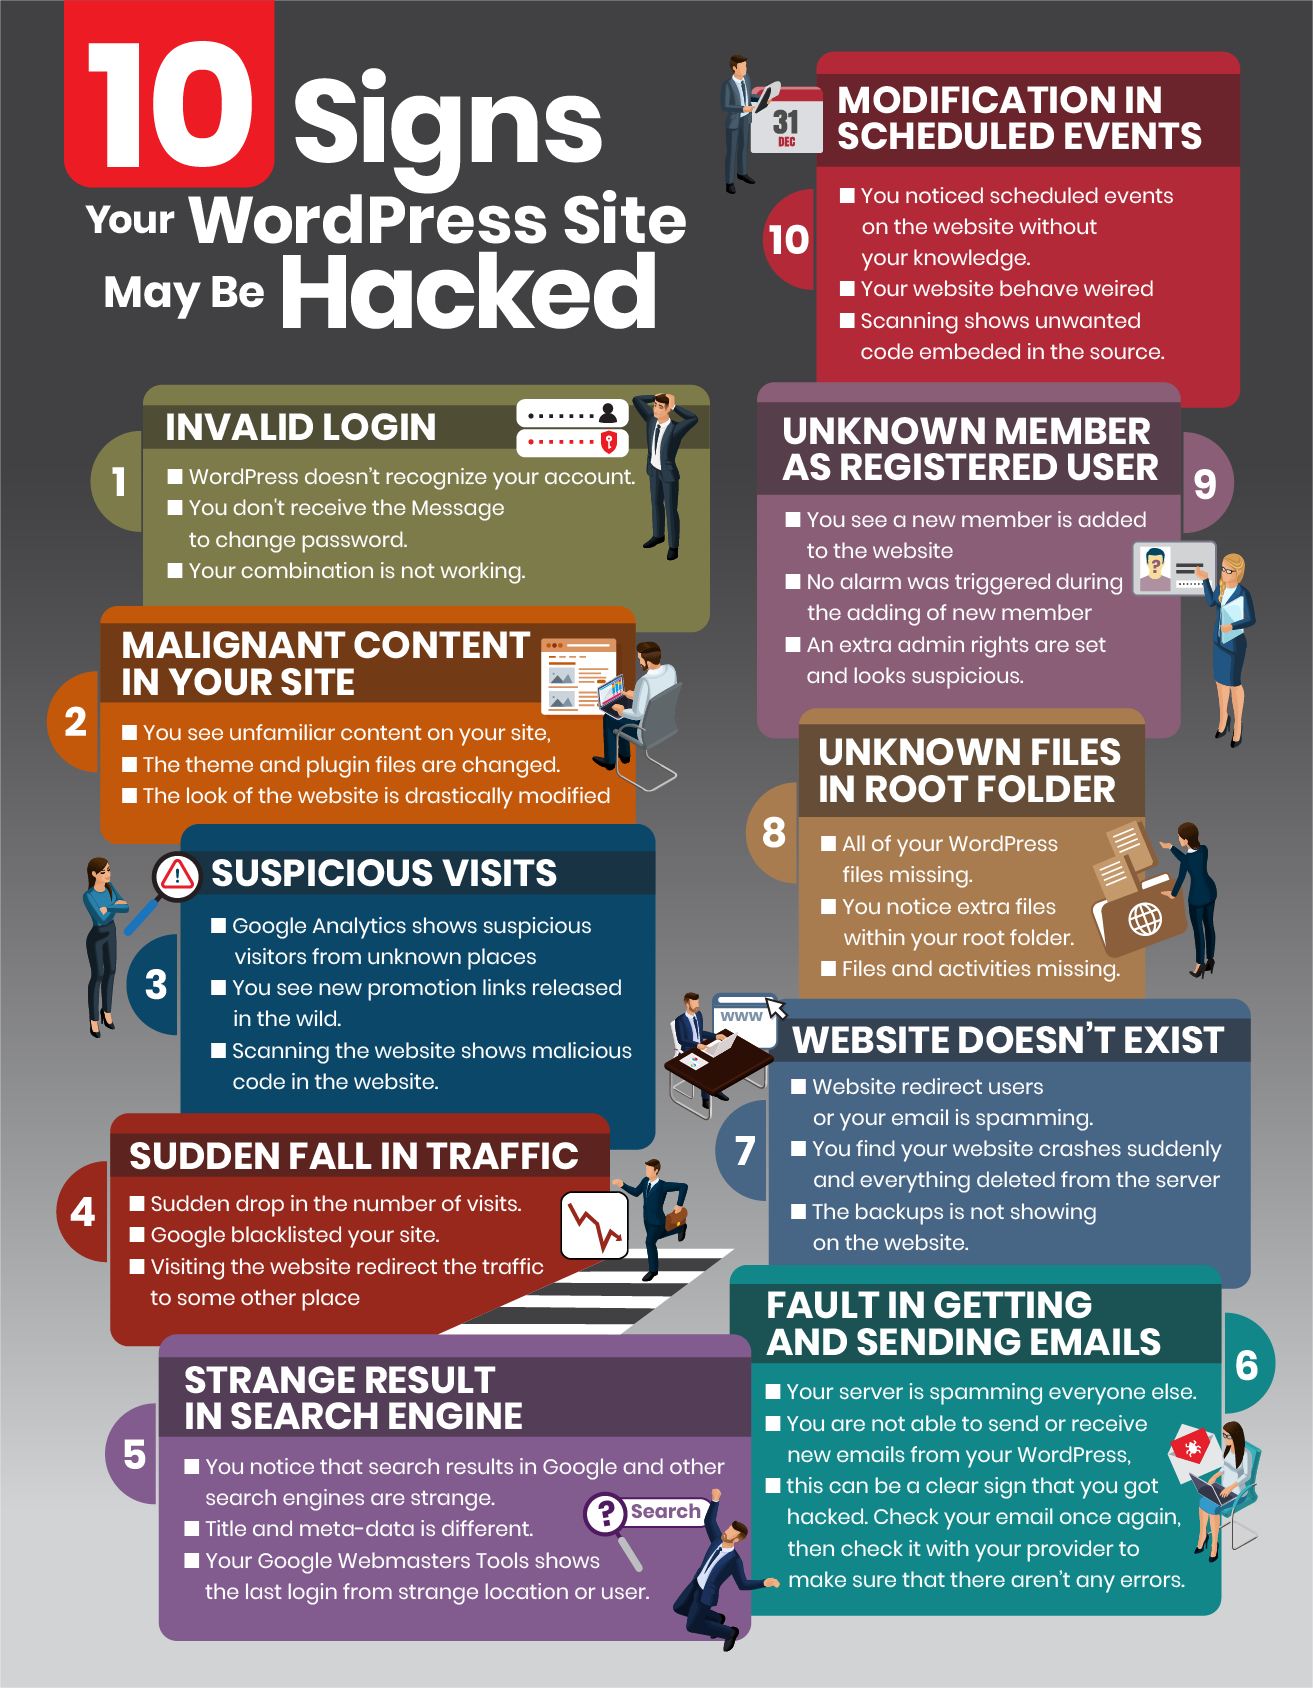 How to Check if Your WordPress Website is Hacked [Infographic]